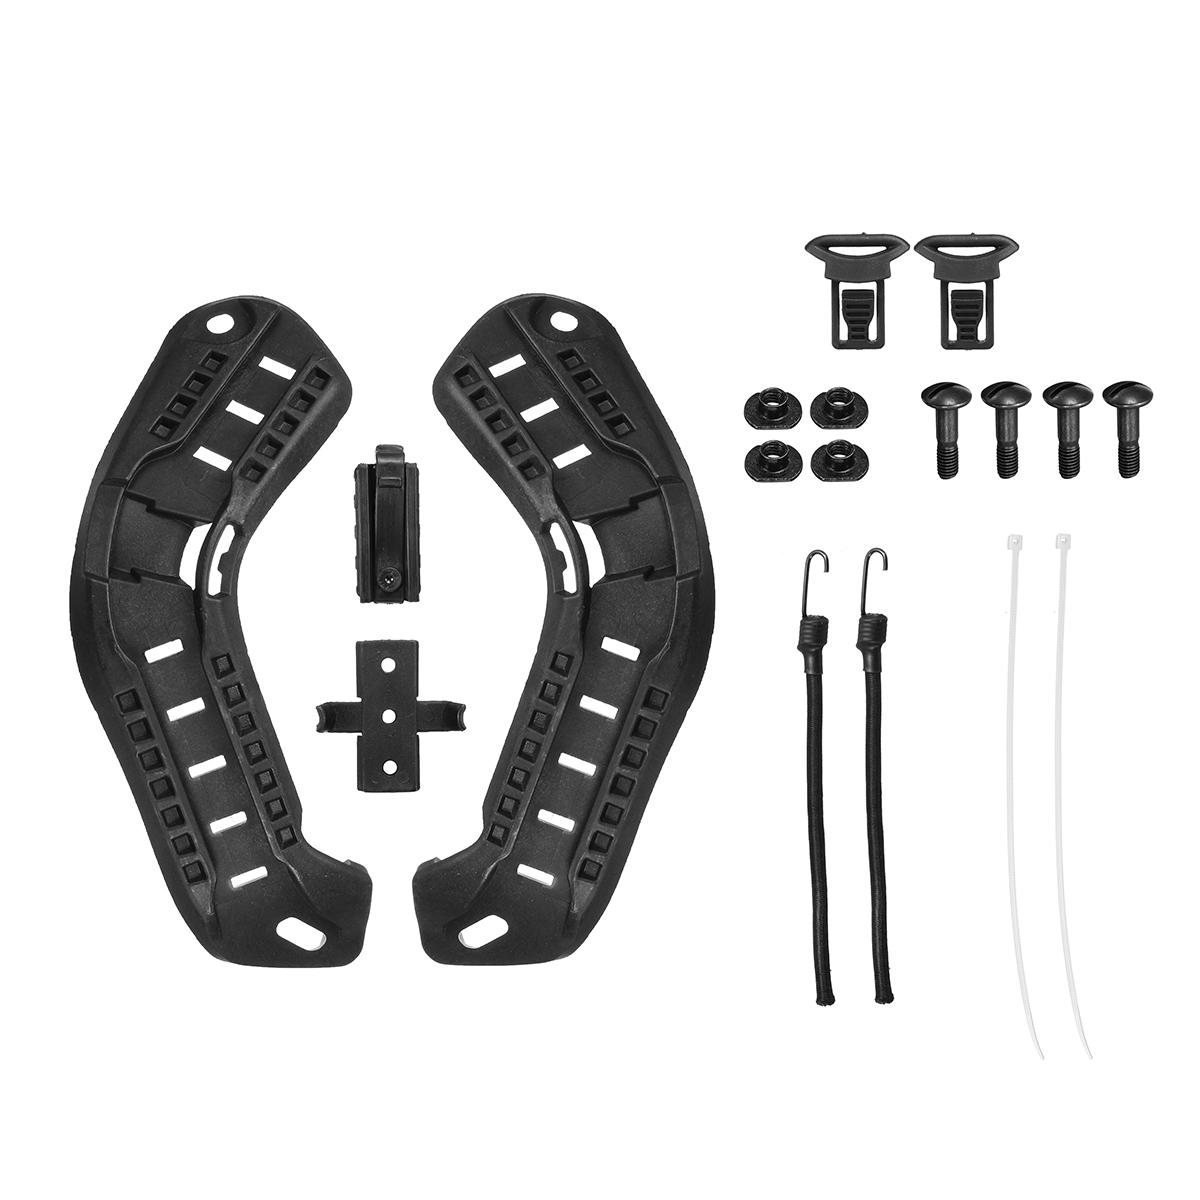 Tactical Helmet Guide Side Rail Accessory Mount For MICH 2000 Helmet